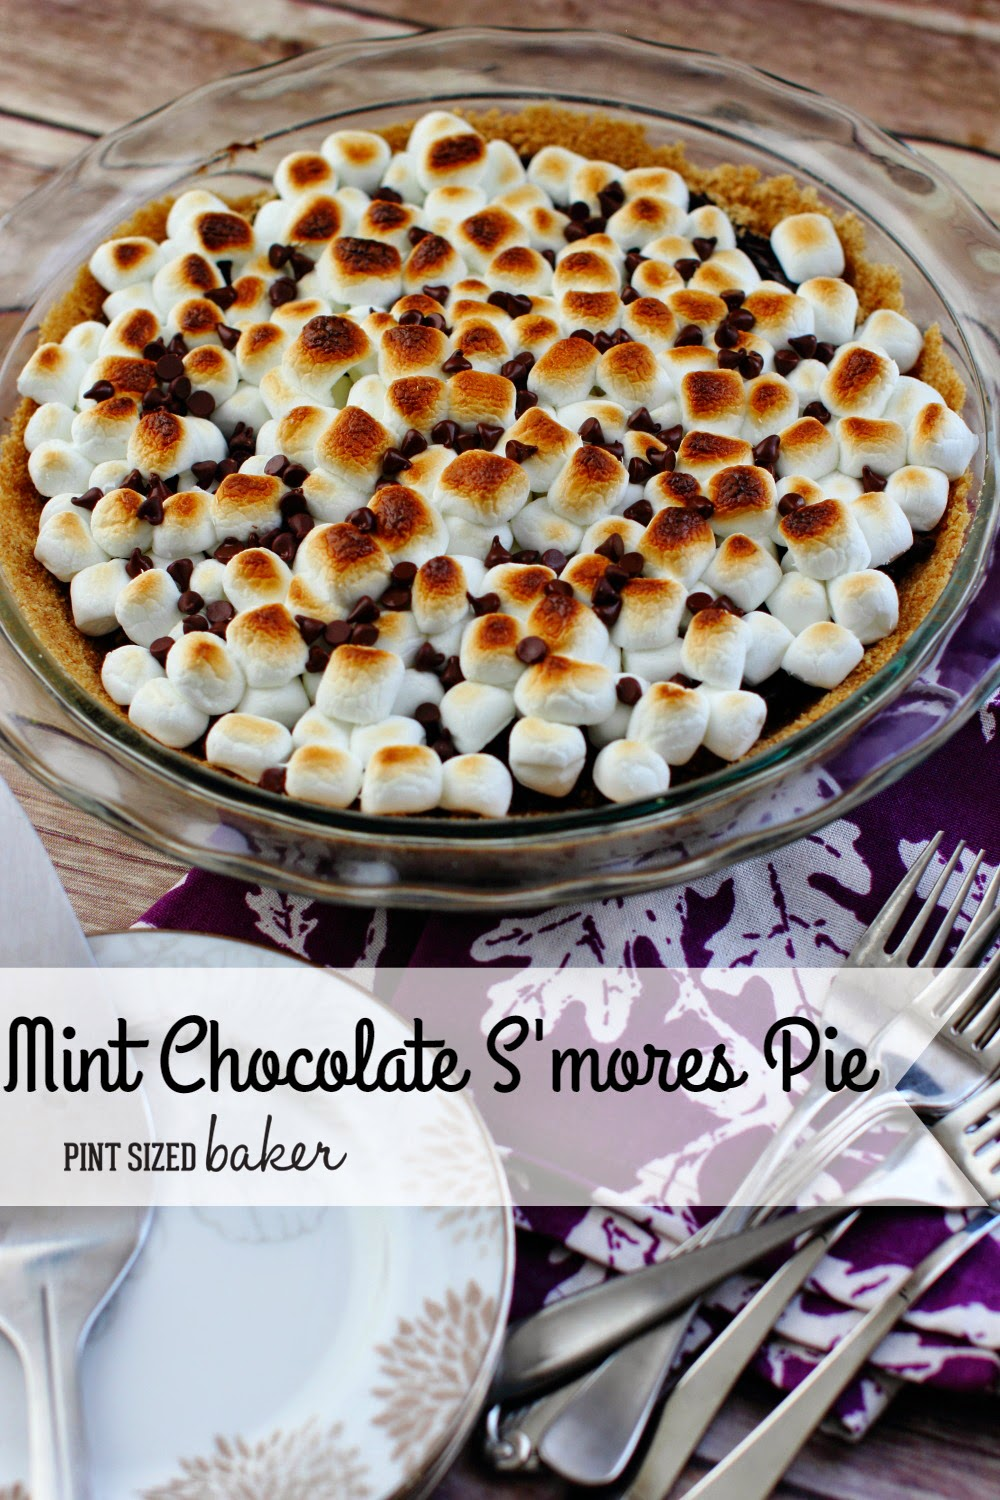 Be prepared to be indulged with this mint chocolate s'mores pie! All the great campfire flavors with a hint of mint and eaten with a fork.